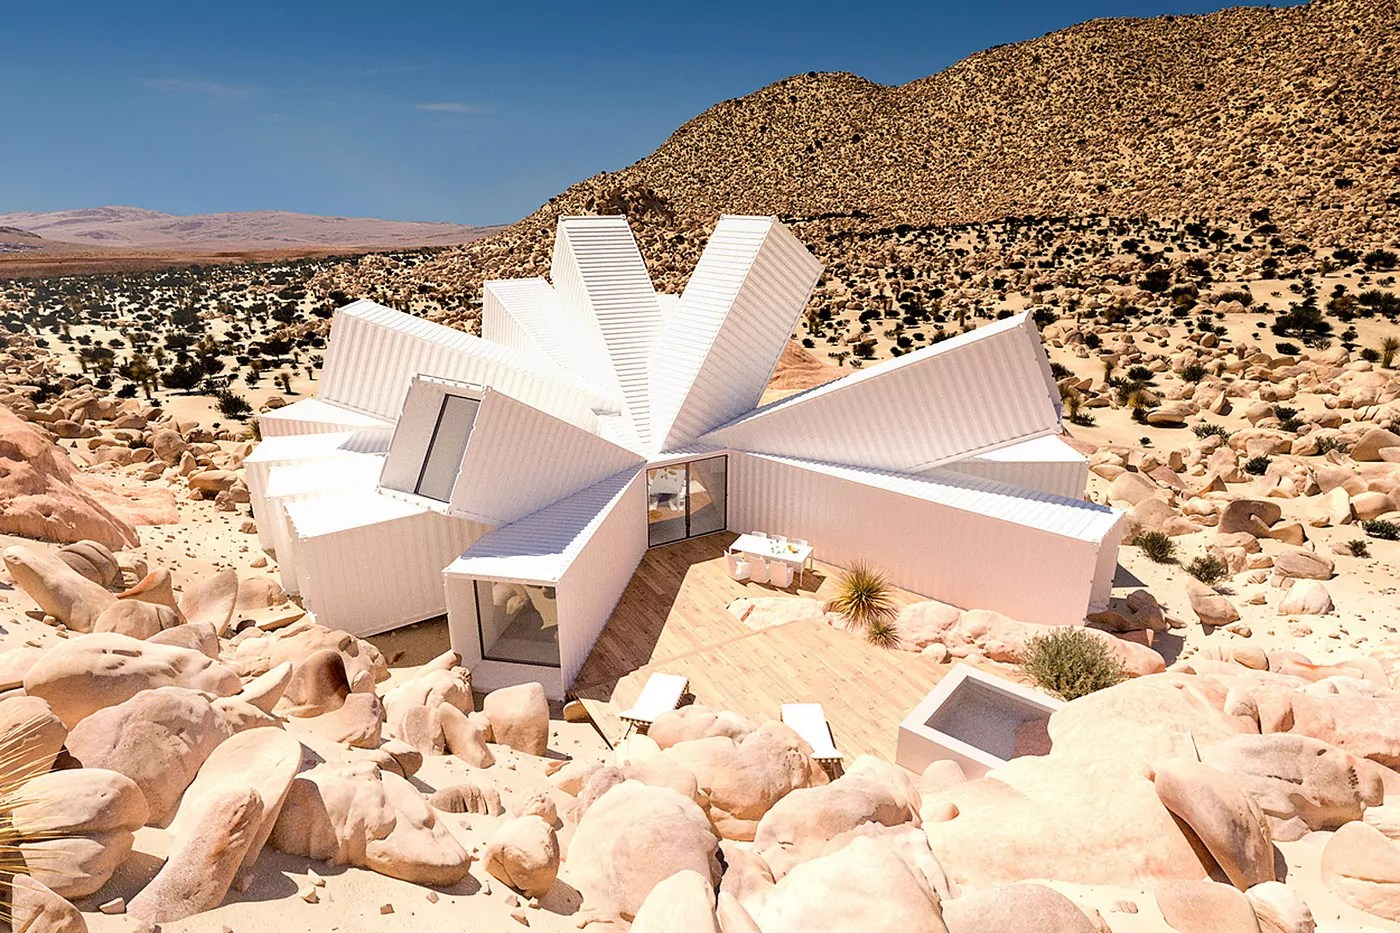 Container Haus Villa Joshua Tree Container House Made Of White Cargo Containers